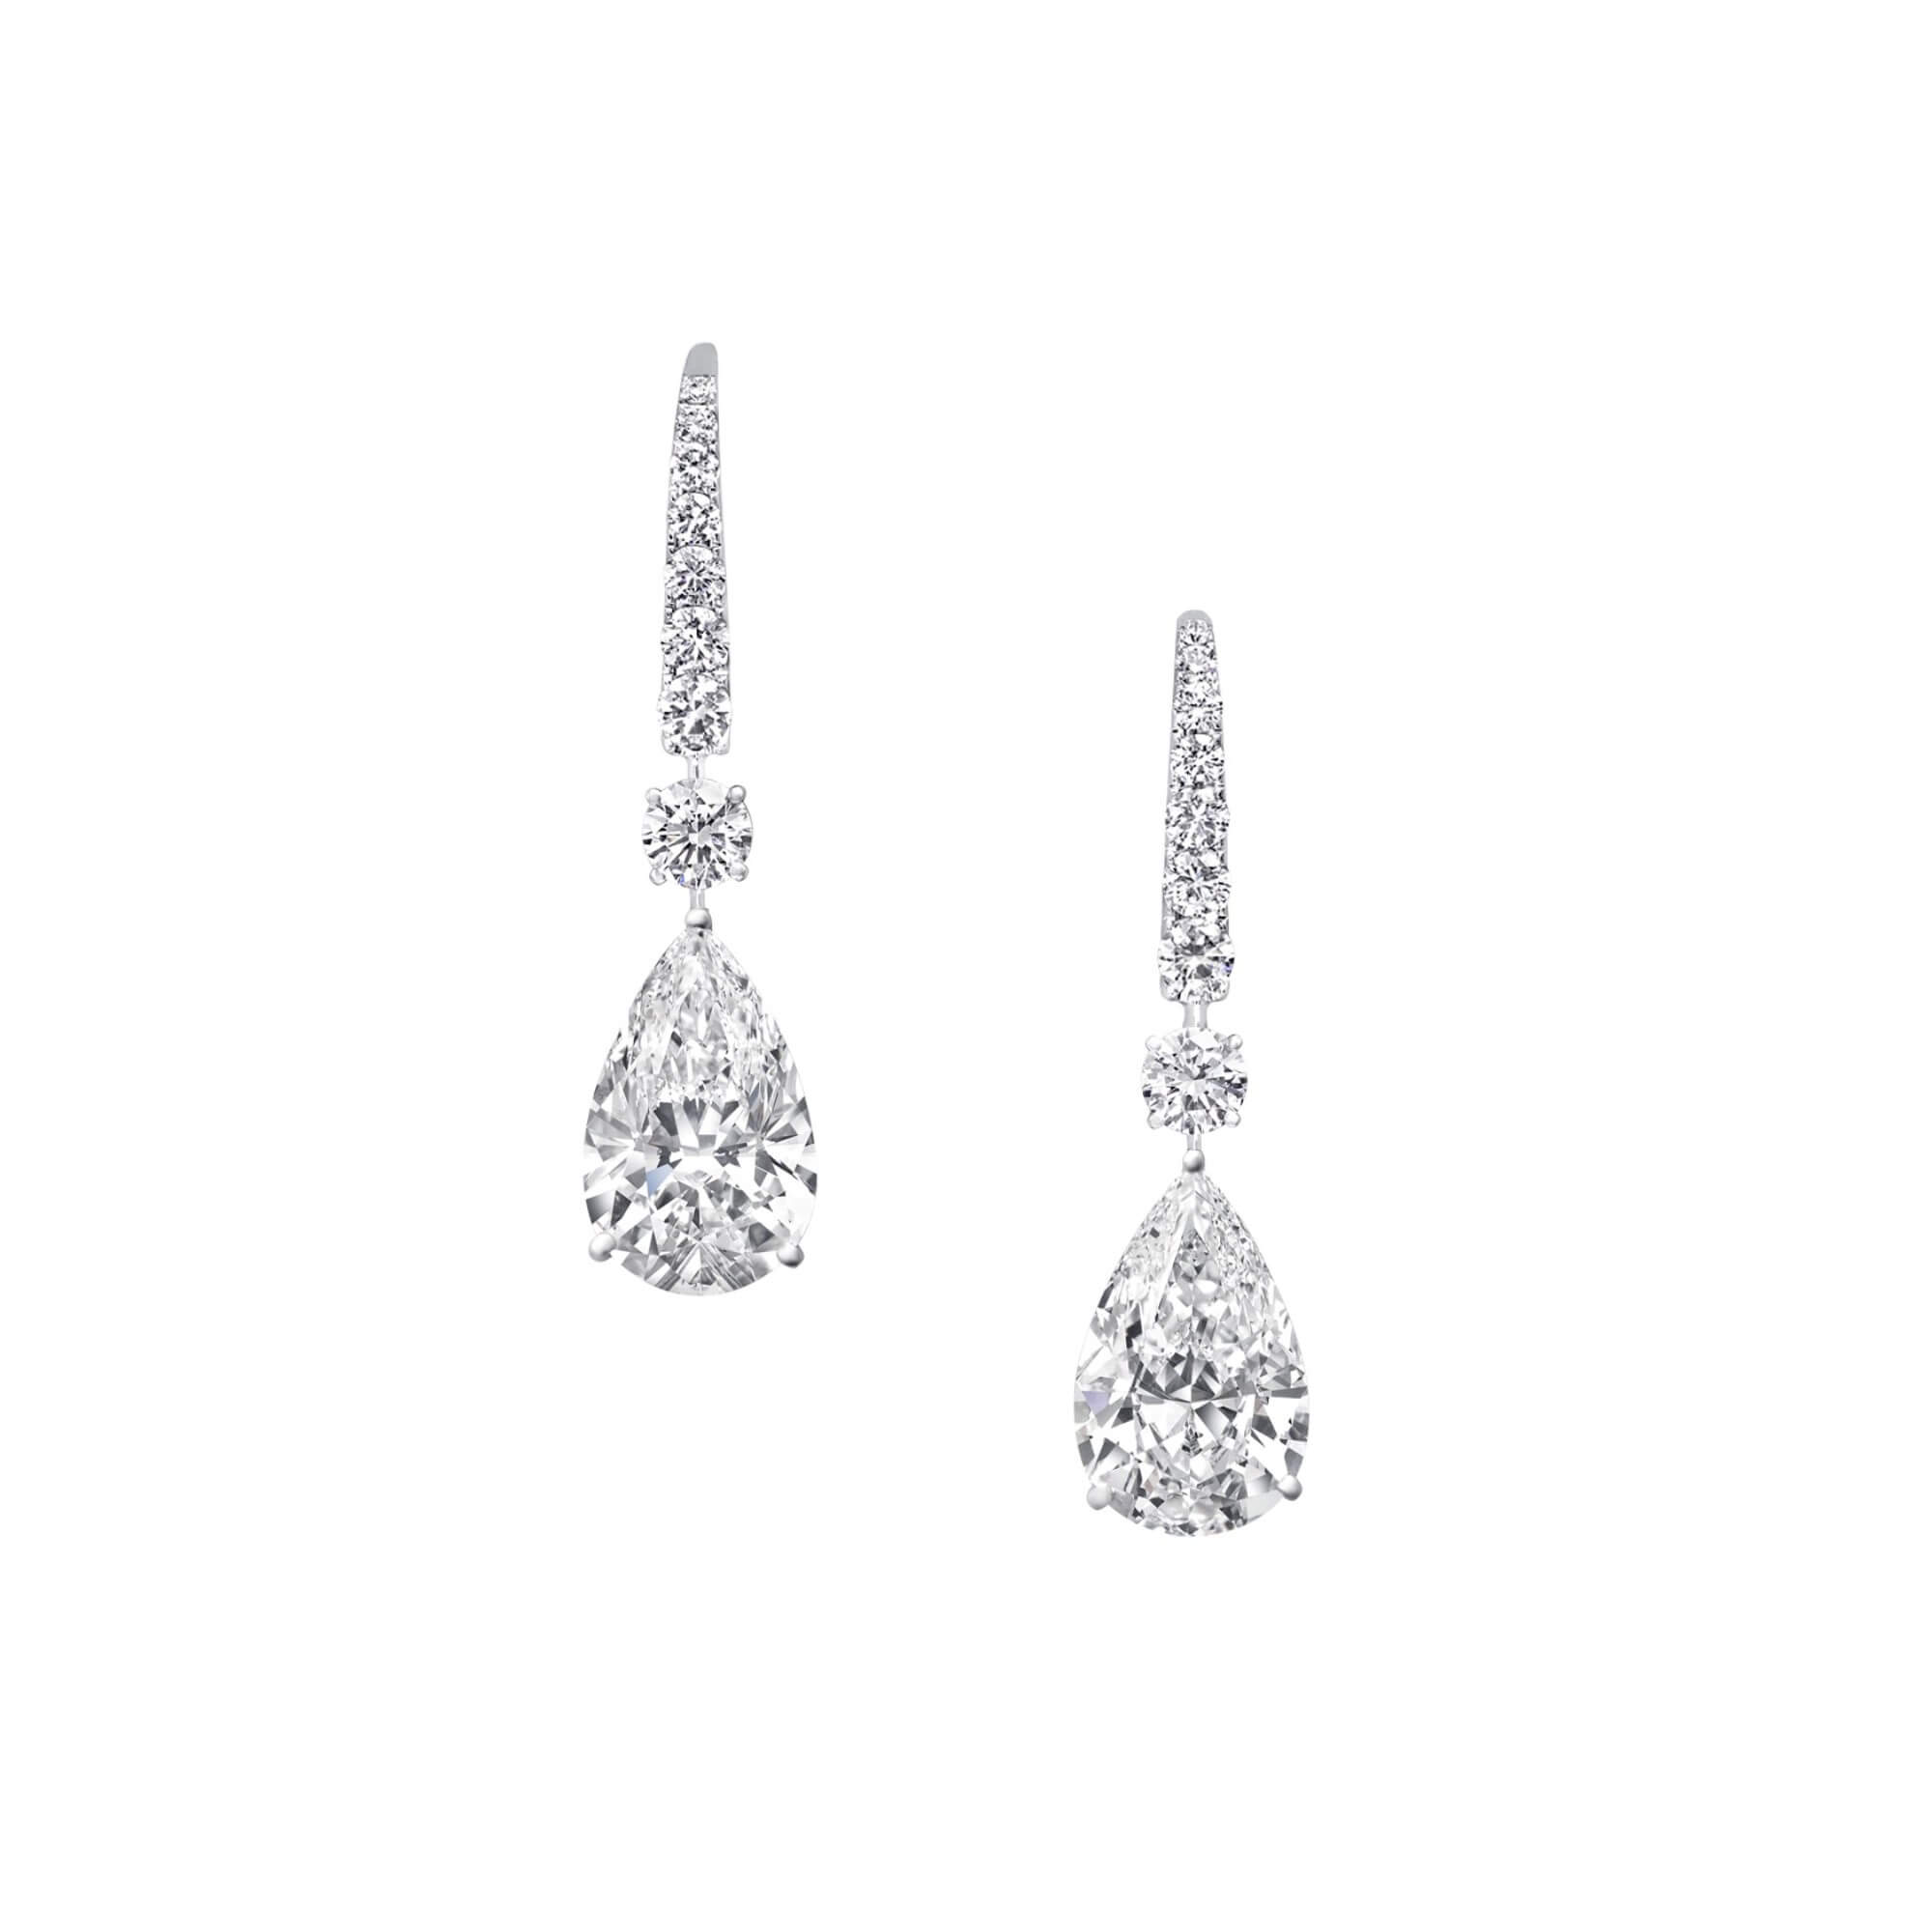 Earrings Pearshape Diamonds